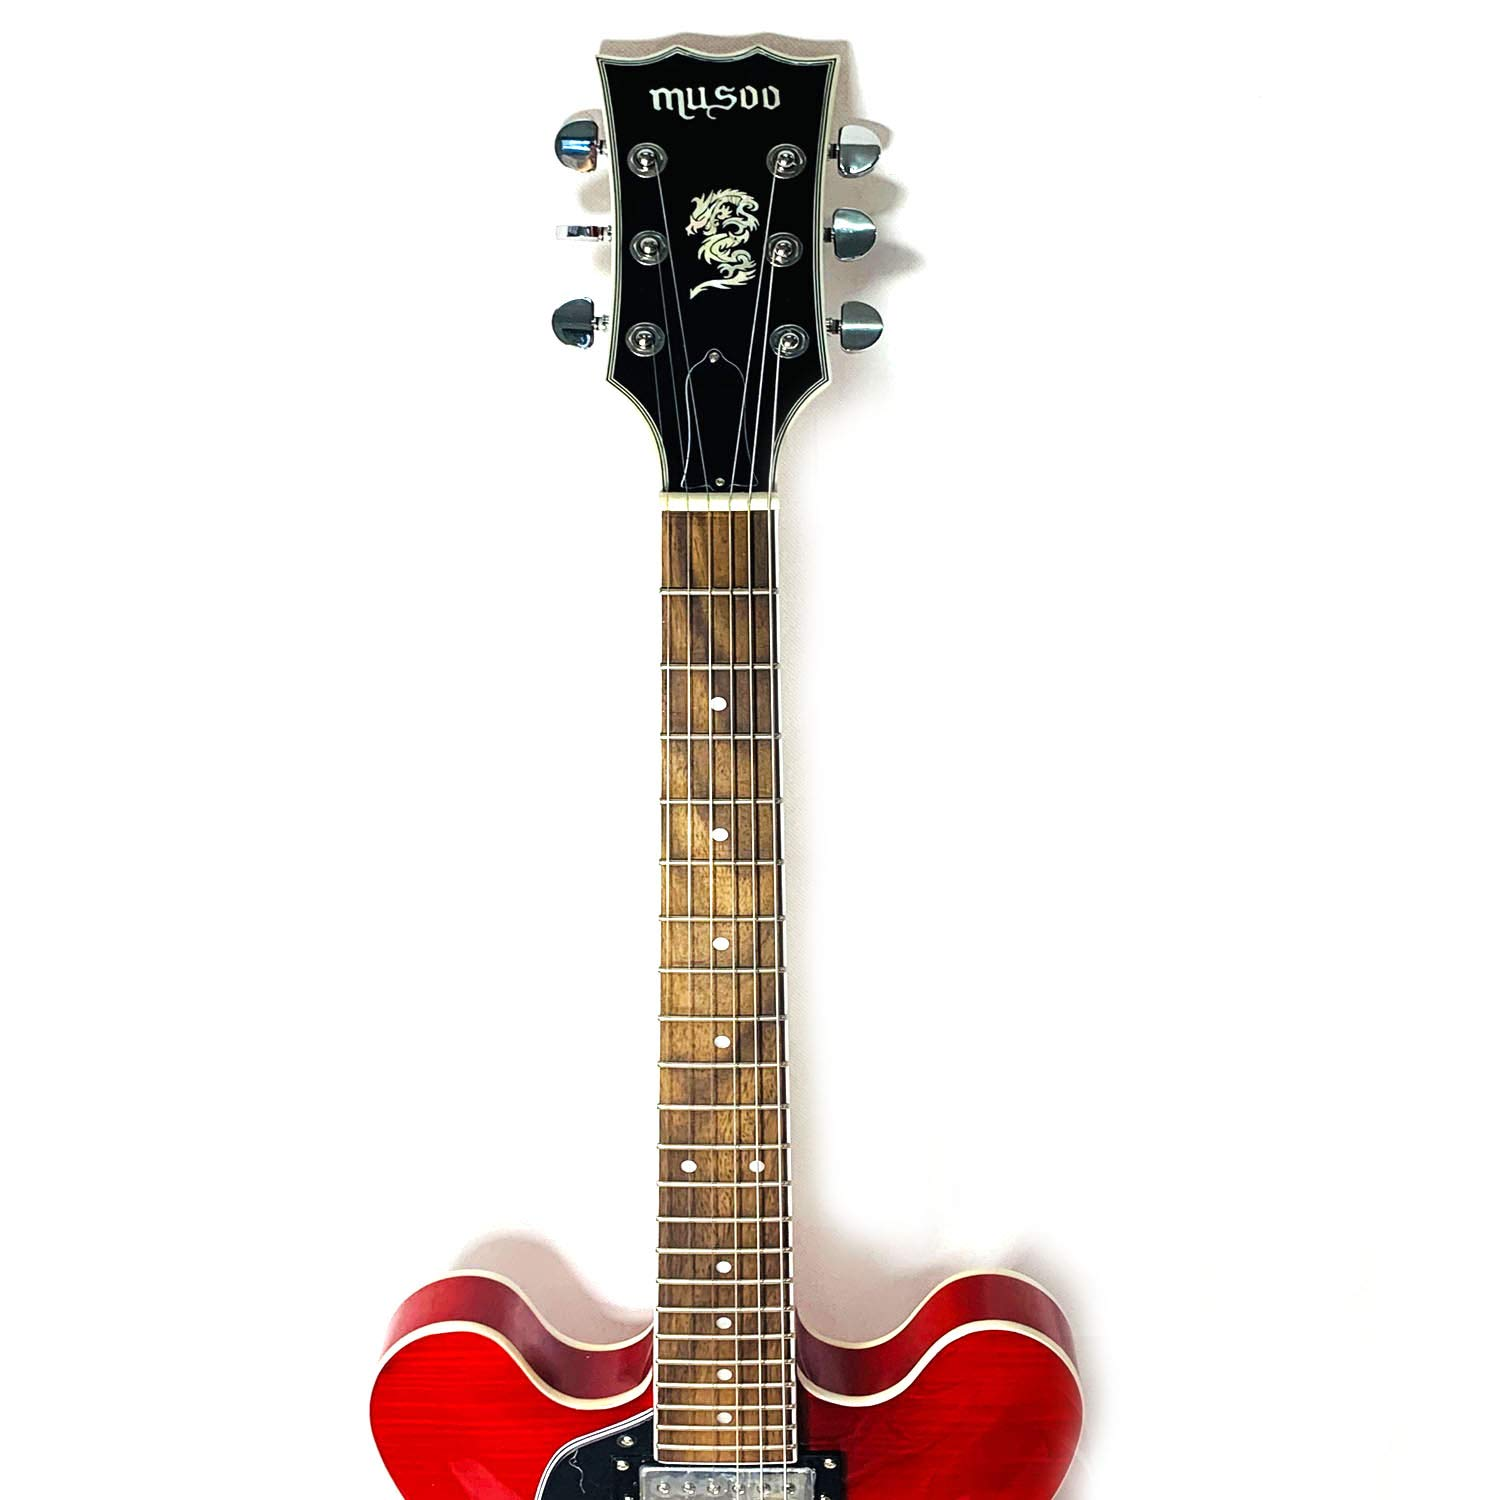 Musoo 335 style left hand Jazz Electric Guitar Flame Maple top Semi-Hollow Body Chrome Hardware